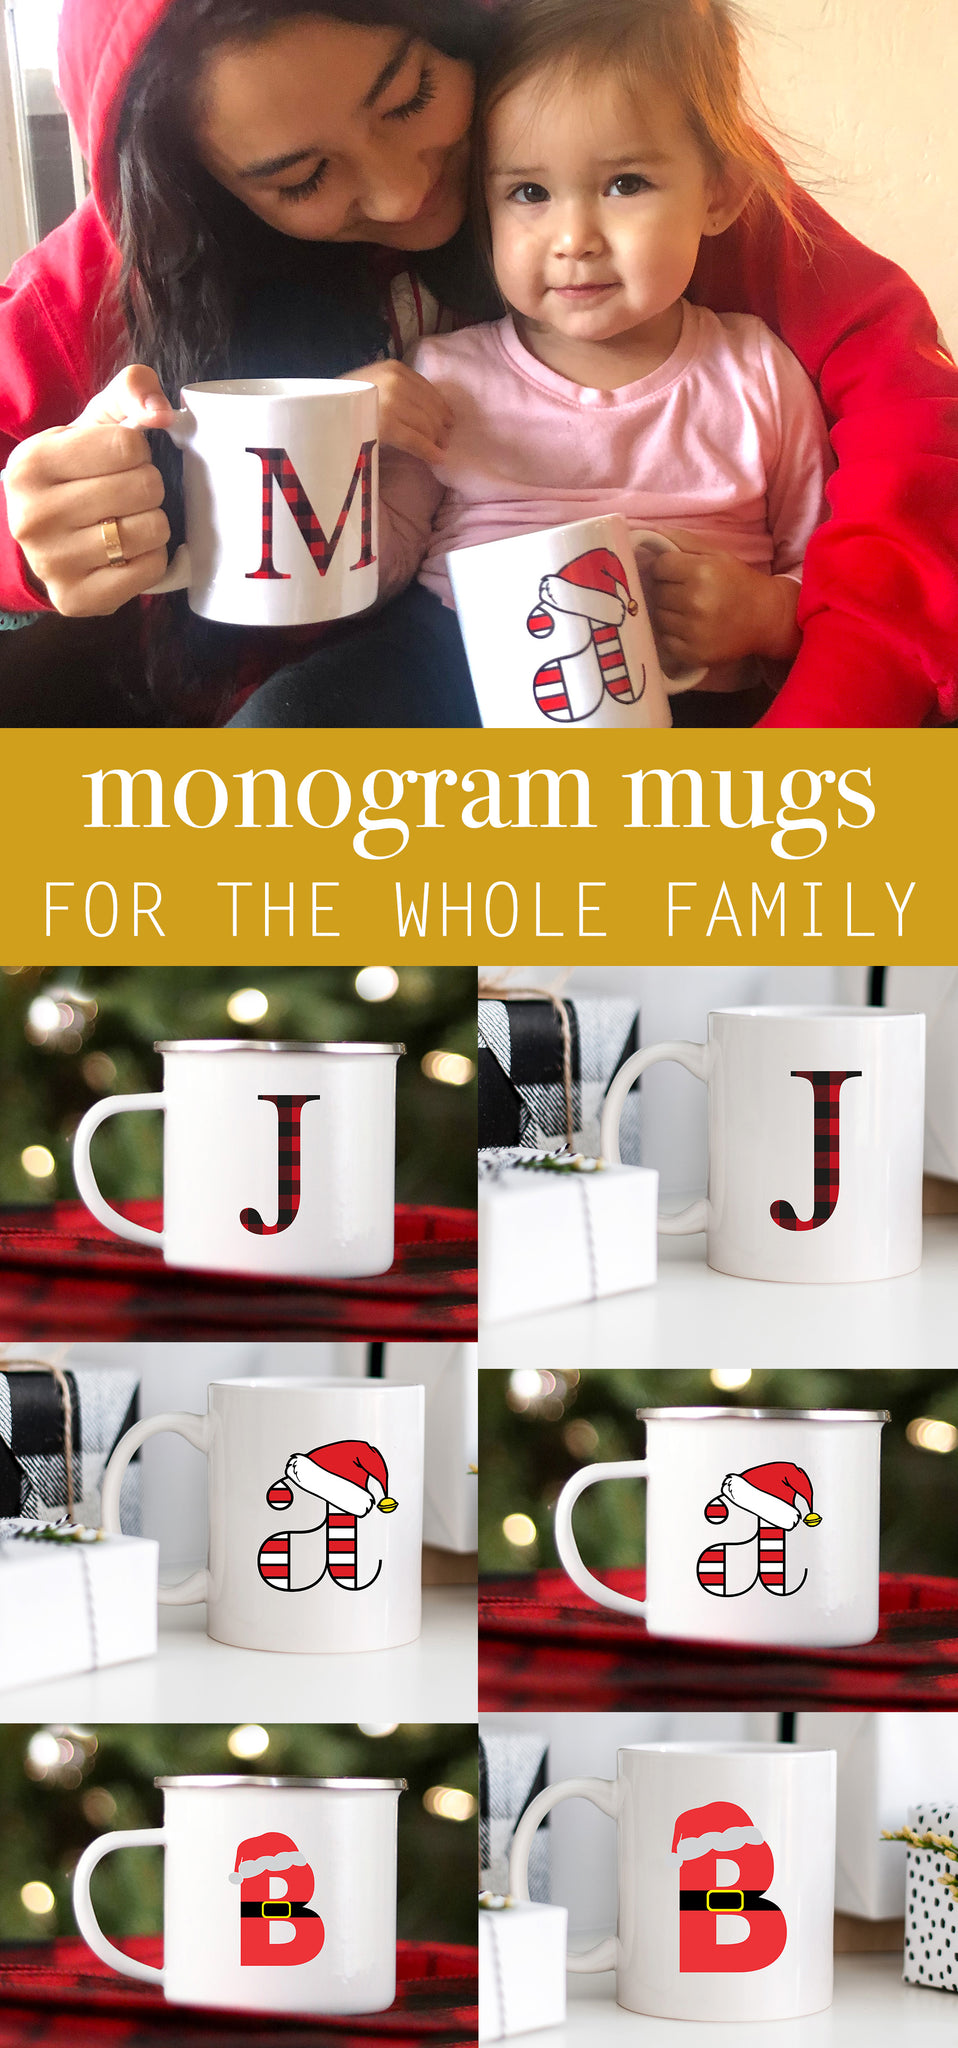 Monogram Mugs for Christmas - Christmas Mugs - Family Hot Cocoa Mugs - Pretty Collected